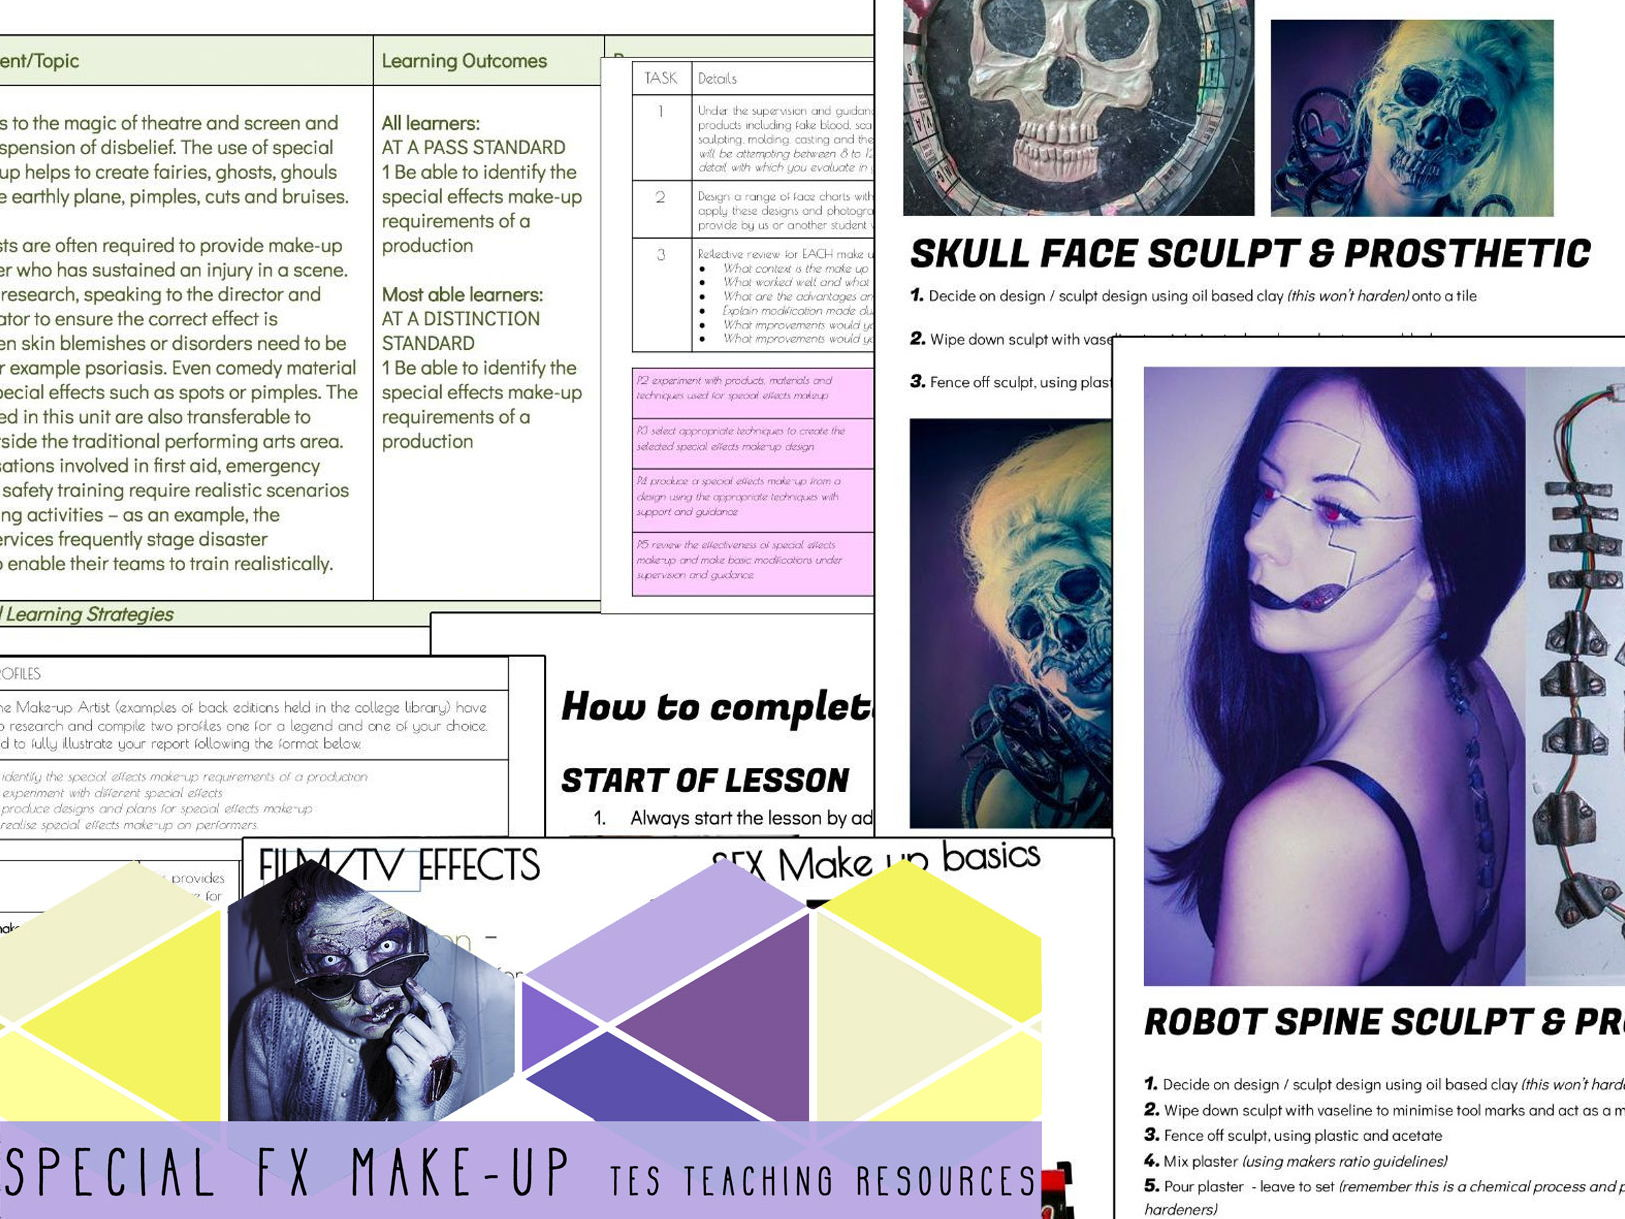 SFX MU Special Effects Make-up |  FULL PACK - SOW, assignments & resources BUNDLE